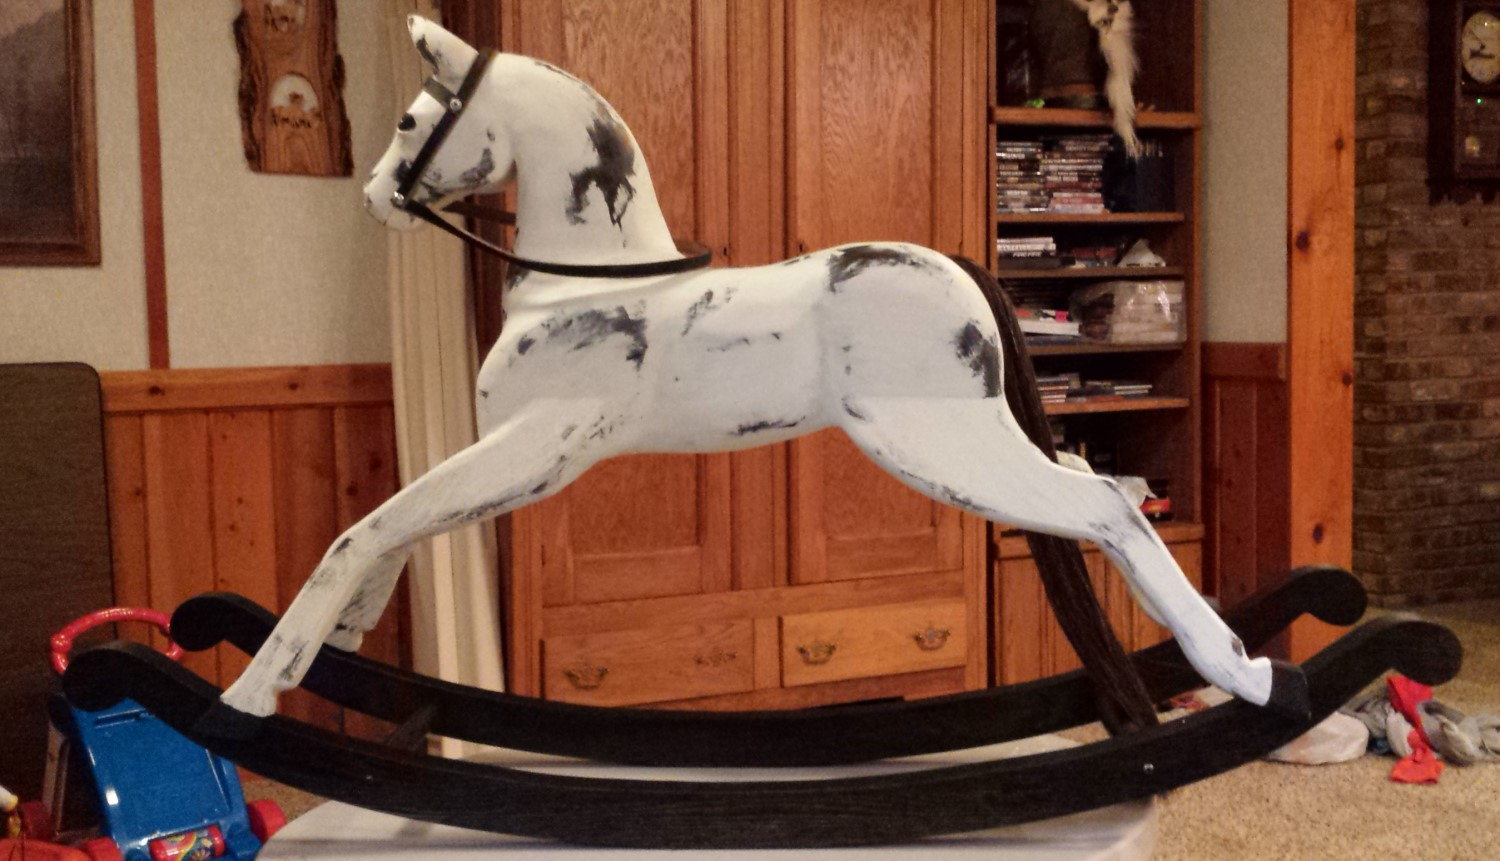 Wilson rocking horses rocking horse styles for Hand crafted rocking horse